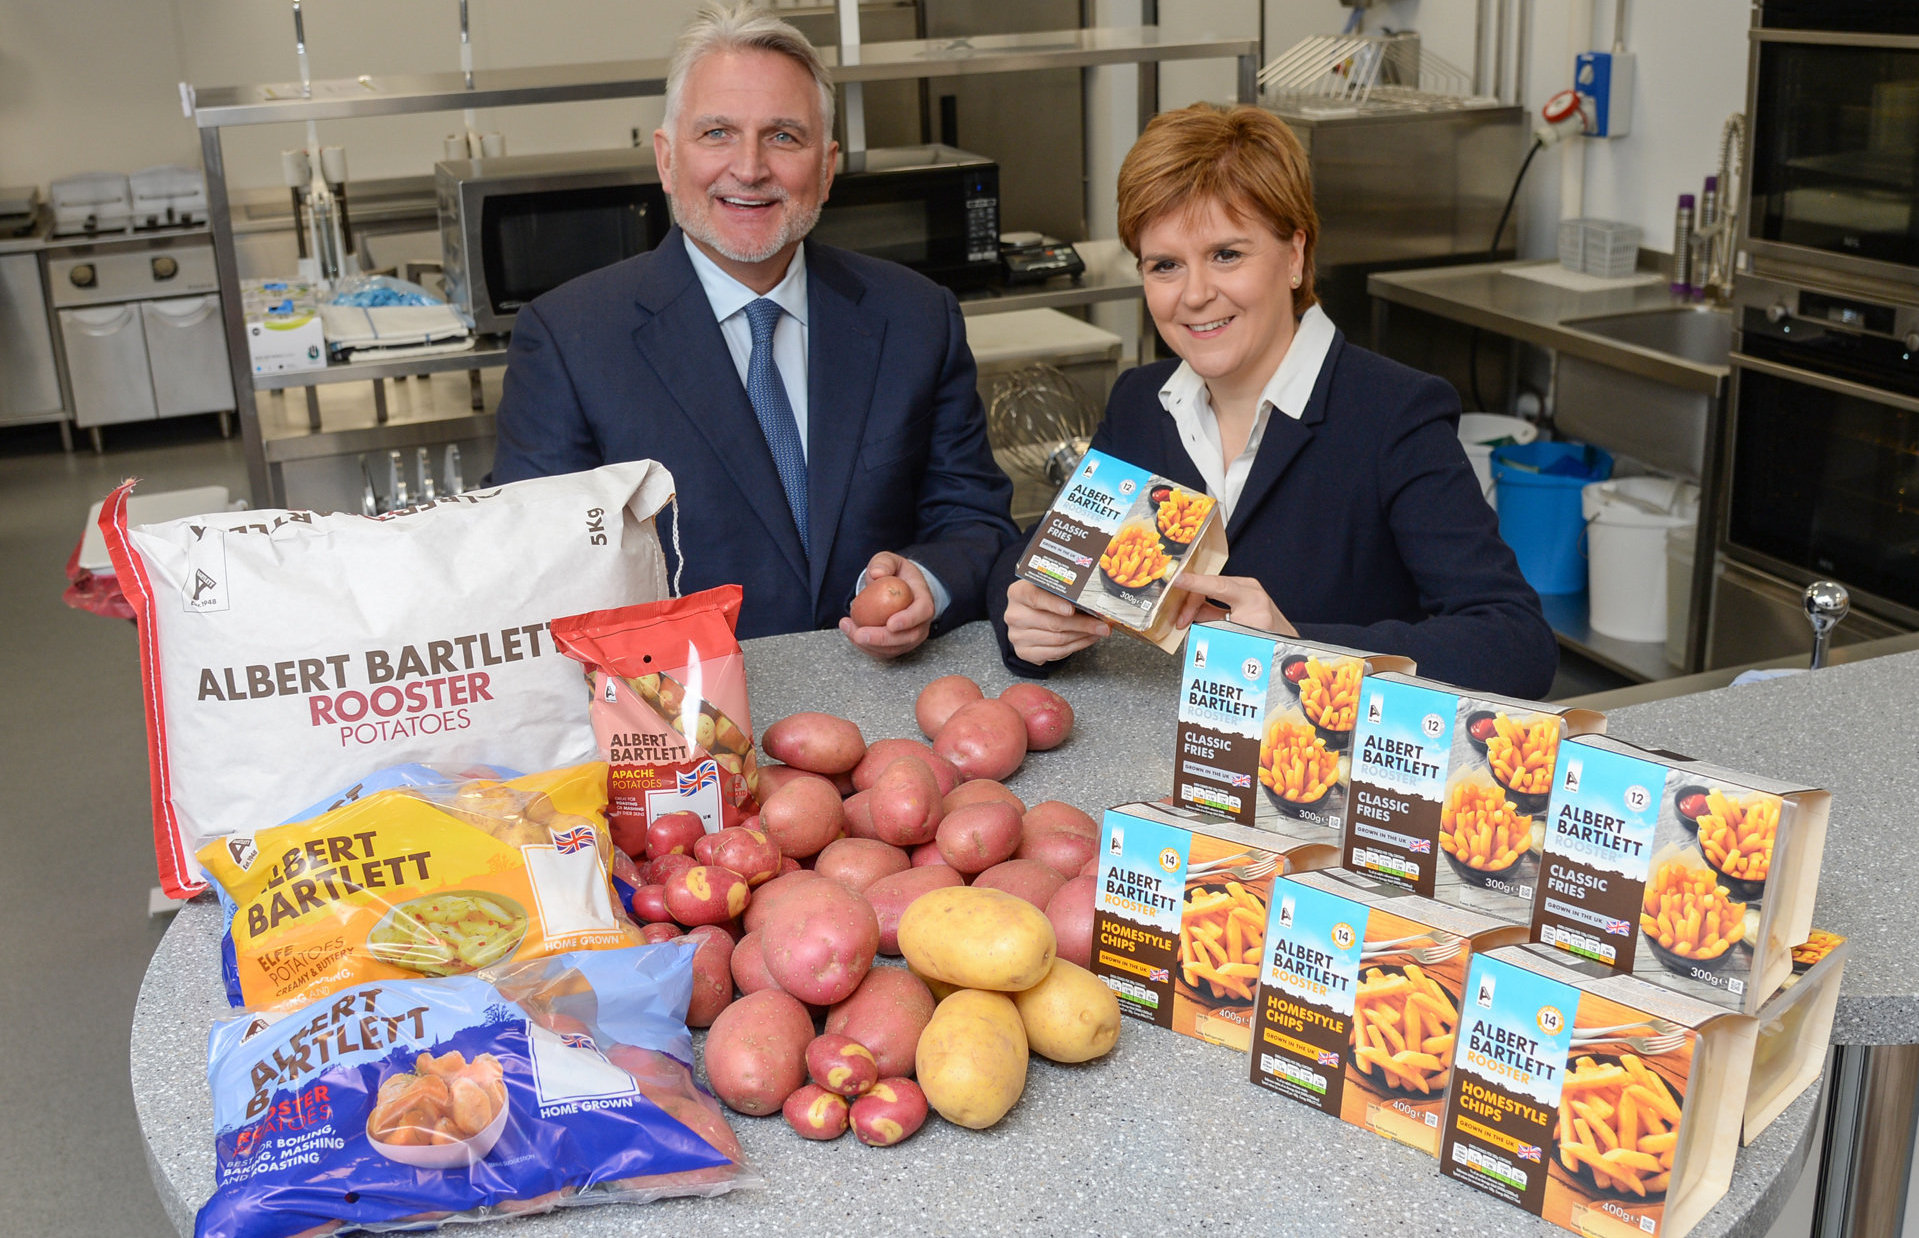 Nicola Sturgeon opened the Scottish Government-backed facility